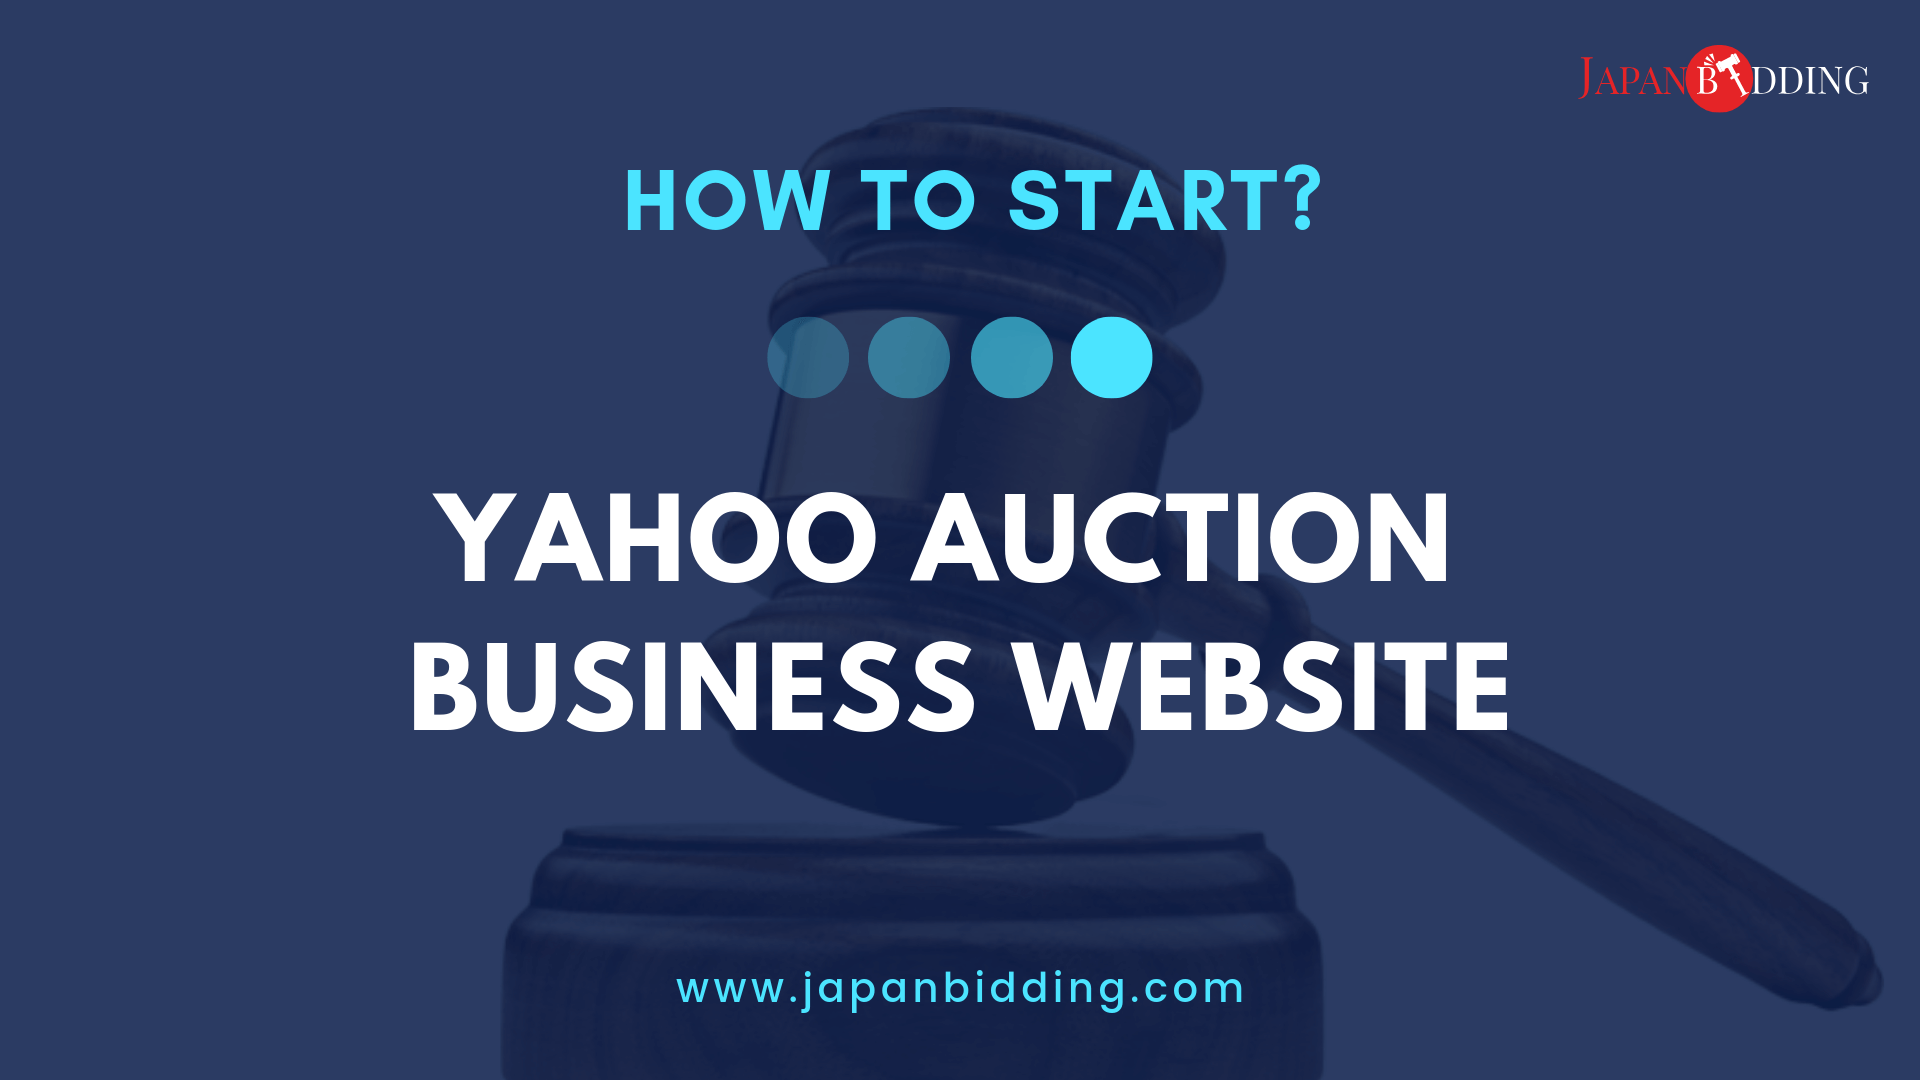 How To Start Yahoo Auction Business Website?